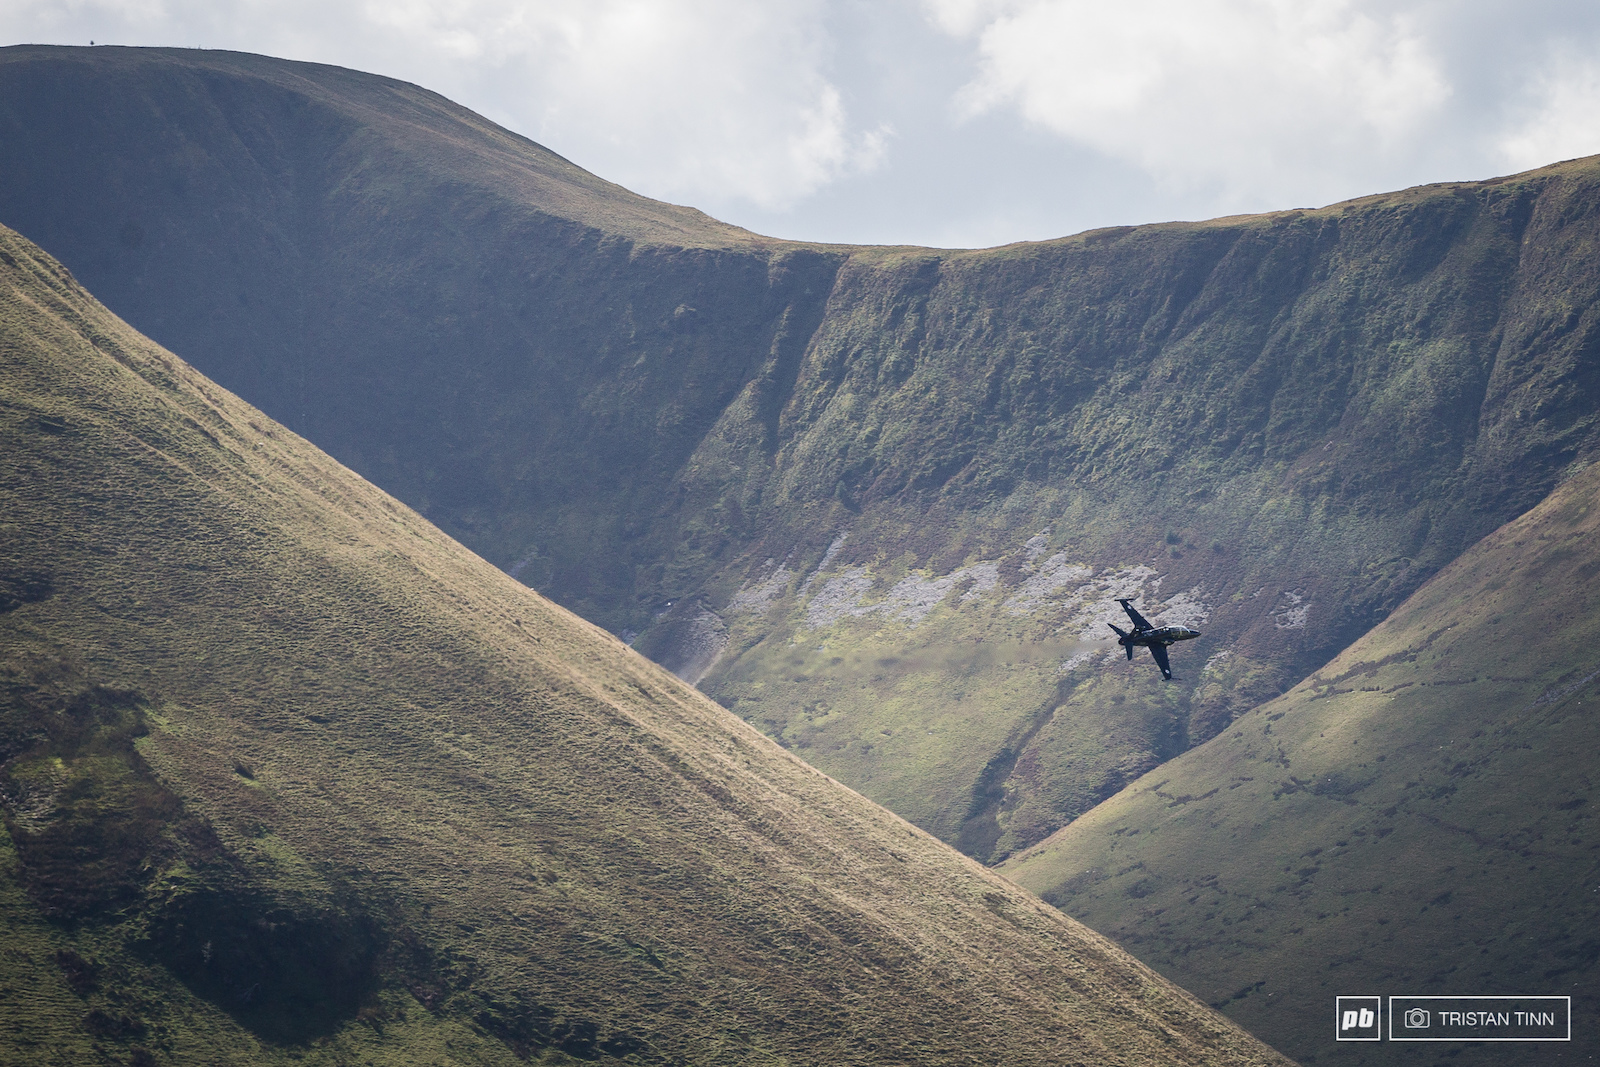 Mach loop action as per usual in the background